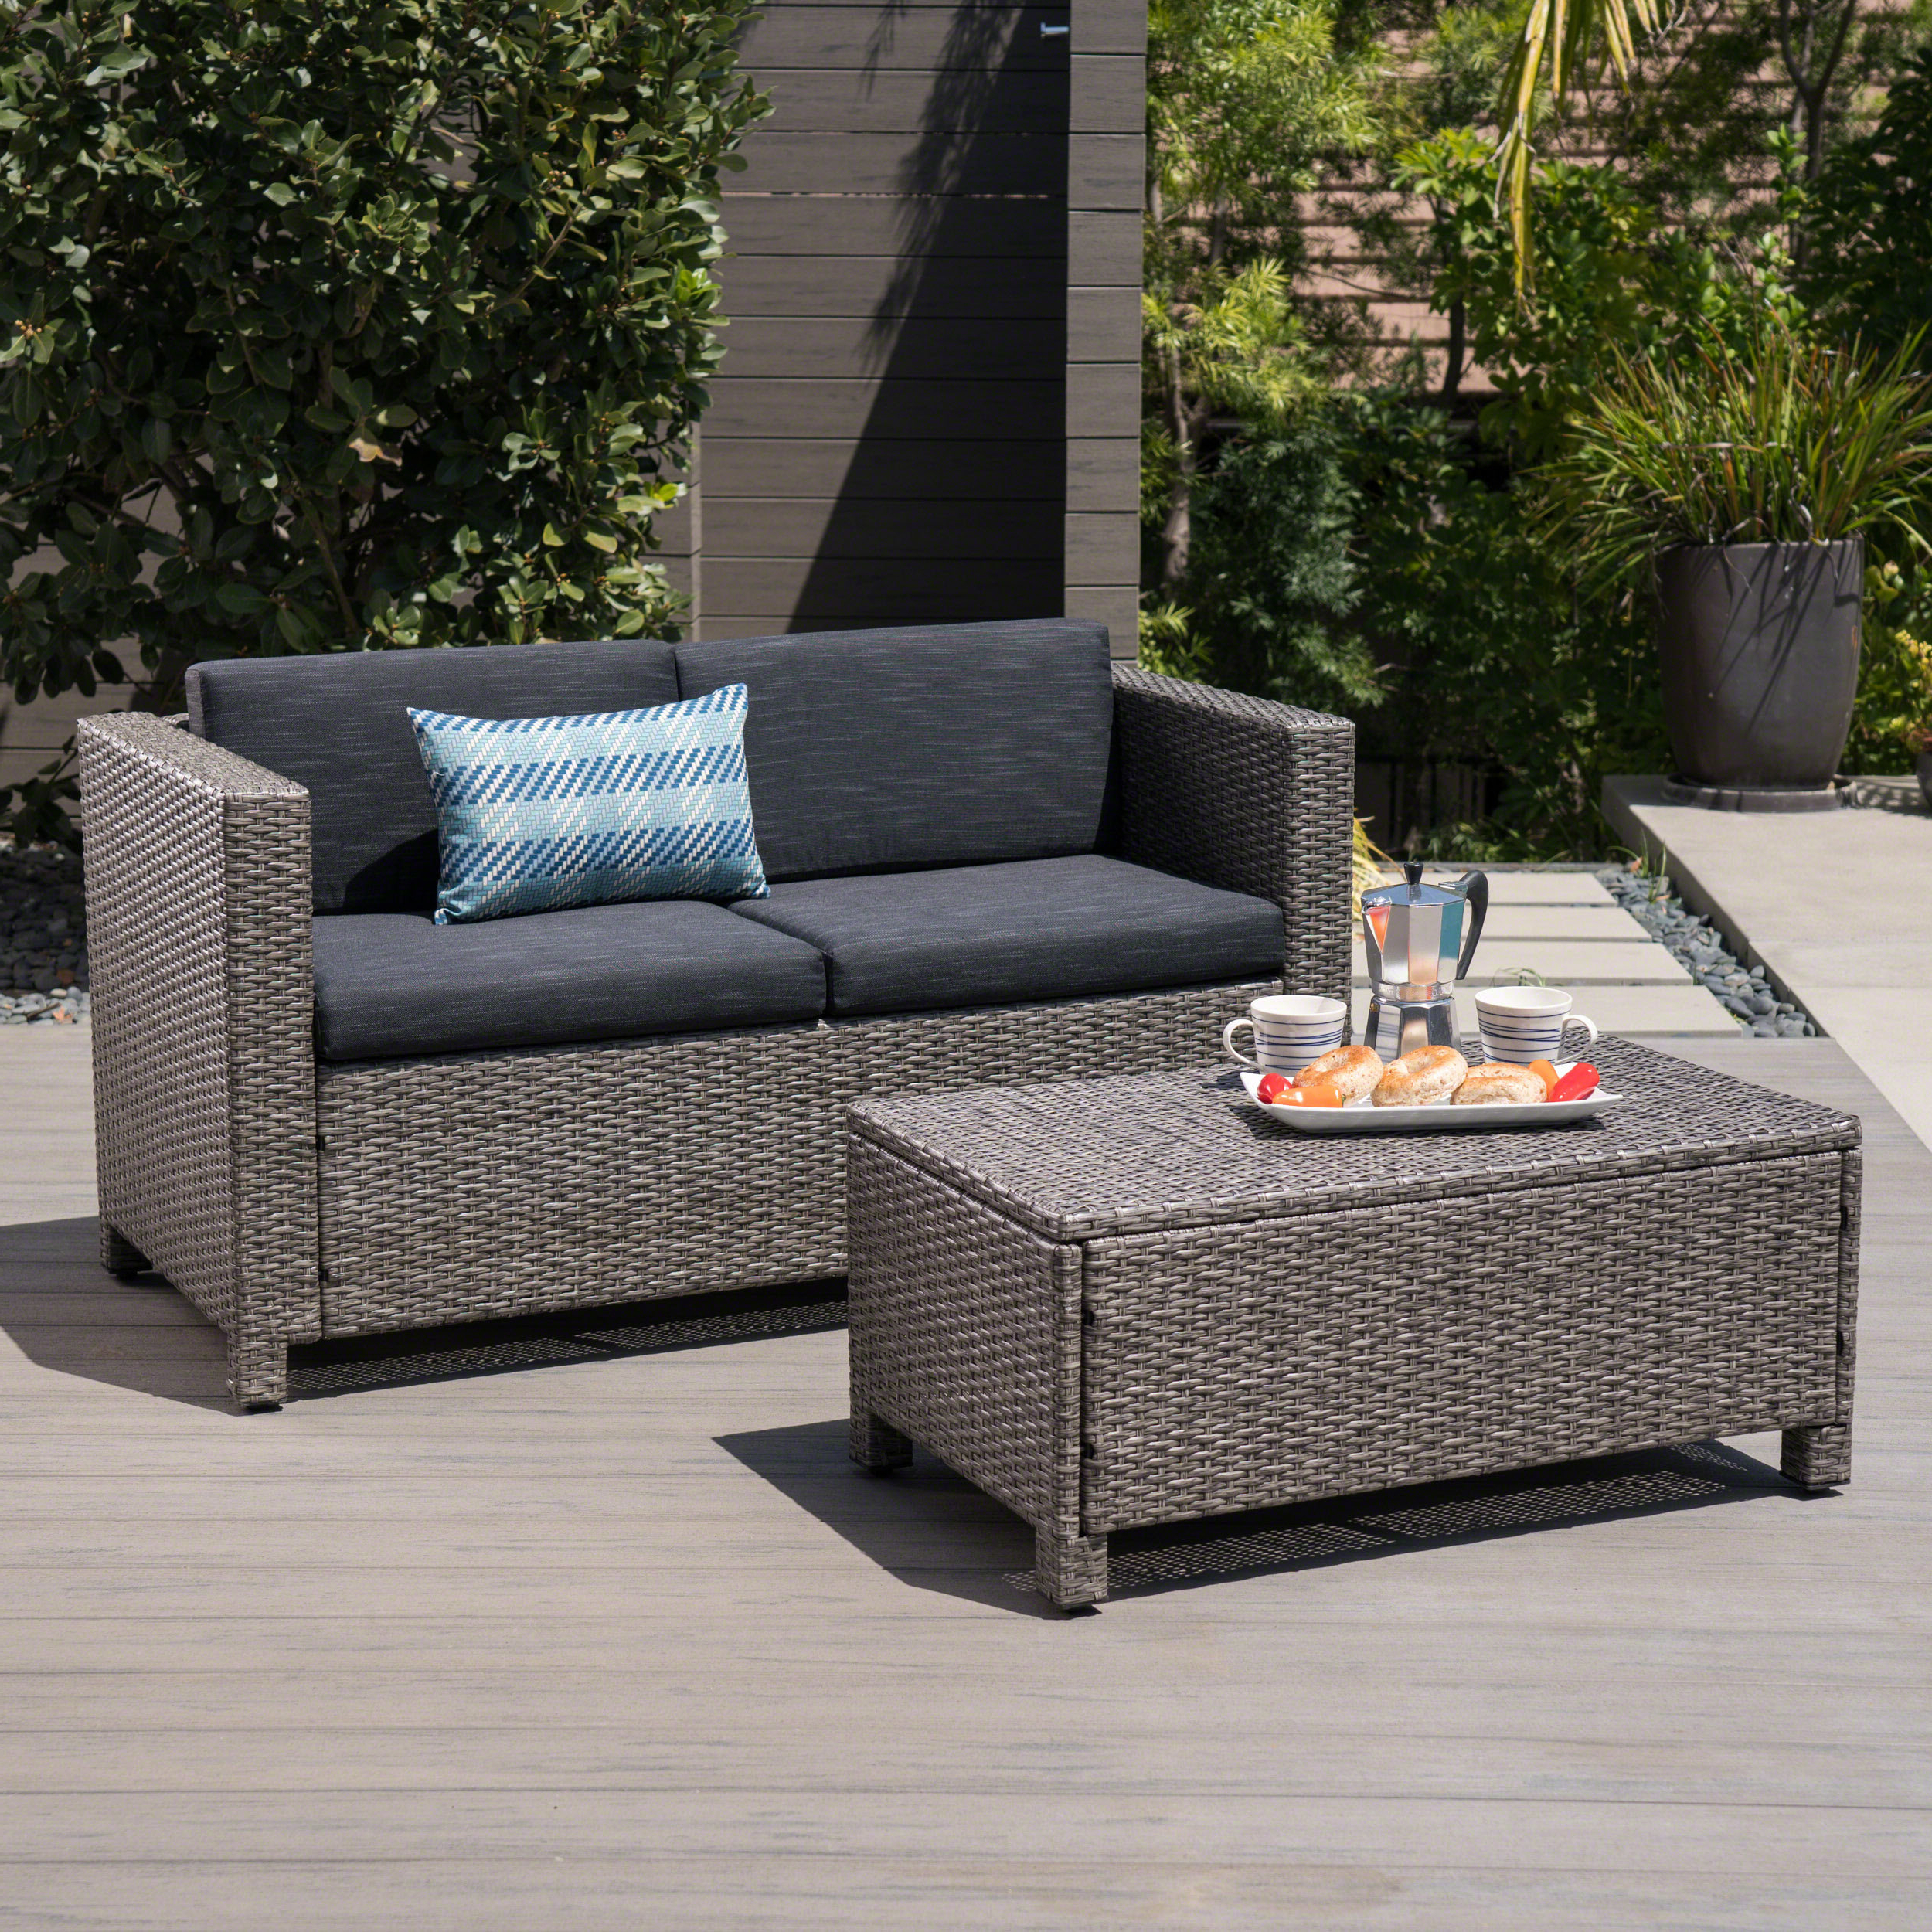 Famous Furst Patio Sofas With Cushion Pertaining To Furst Outdoor Rattan Loveseat And Table Set With Cushions (View 11 of 20)